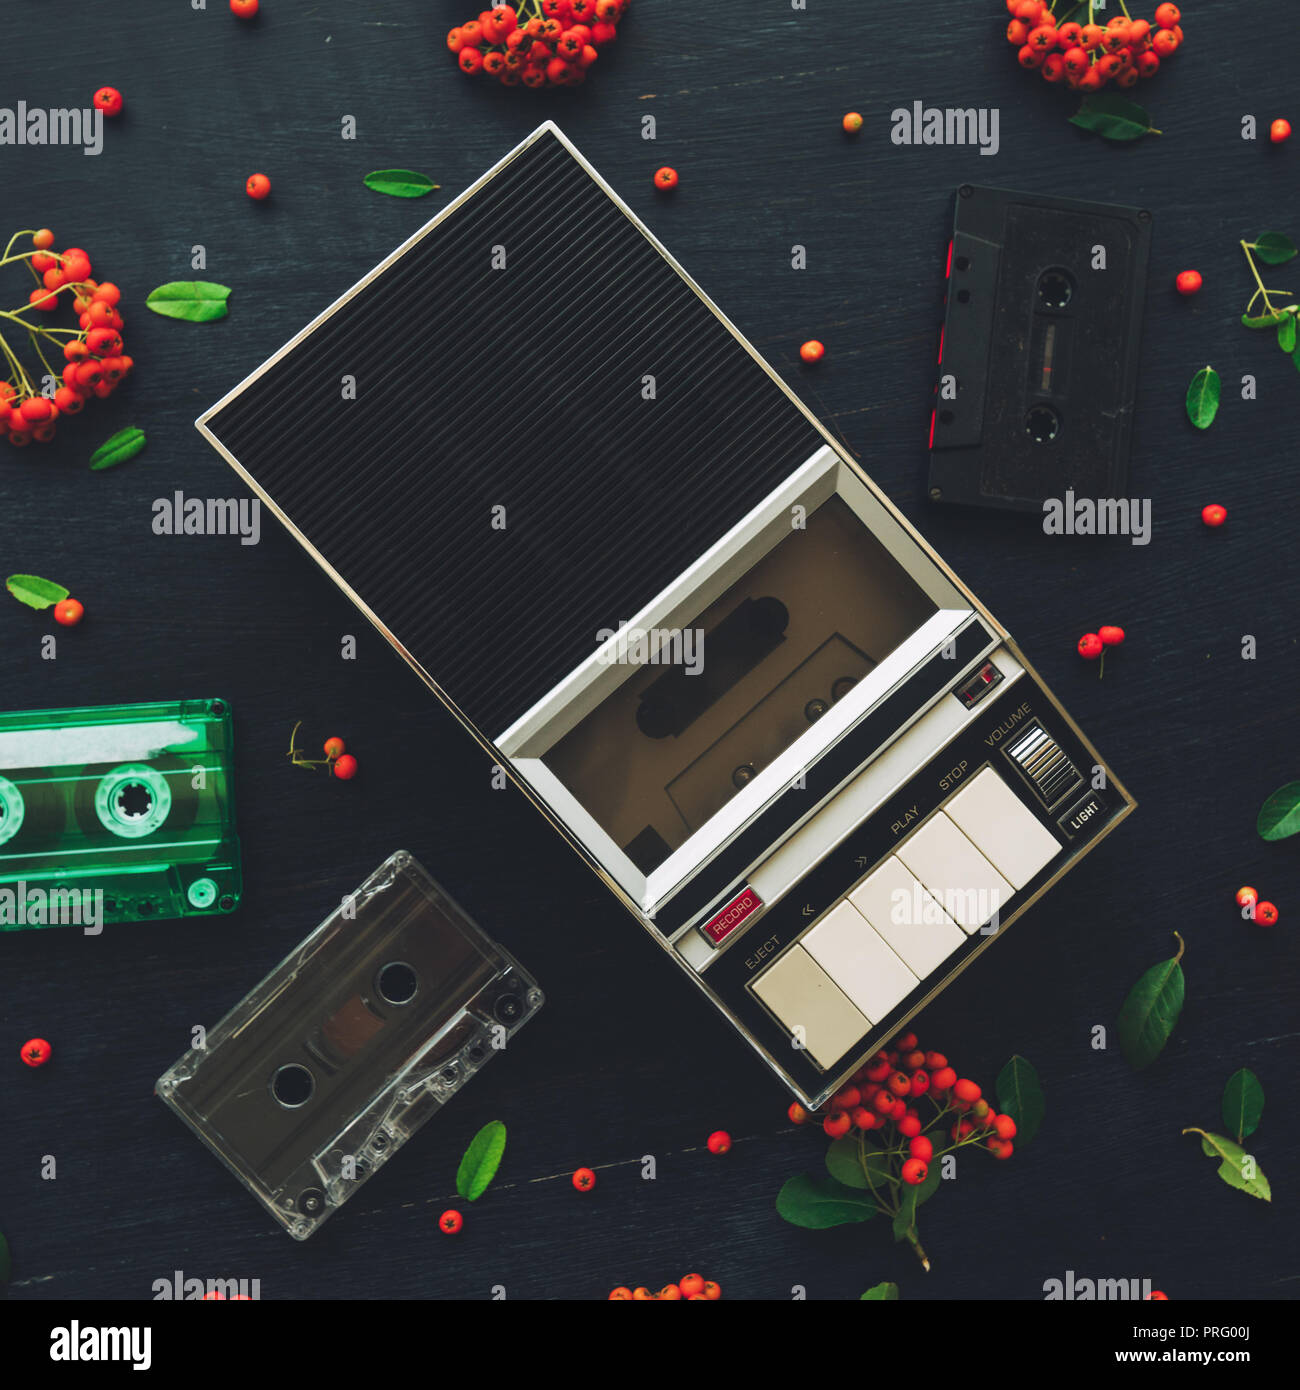 Flat lay music audio cassette and player, nostalgic image